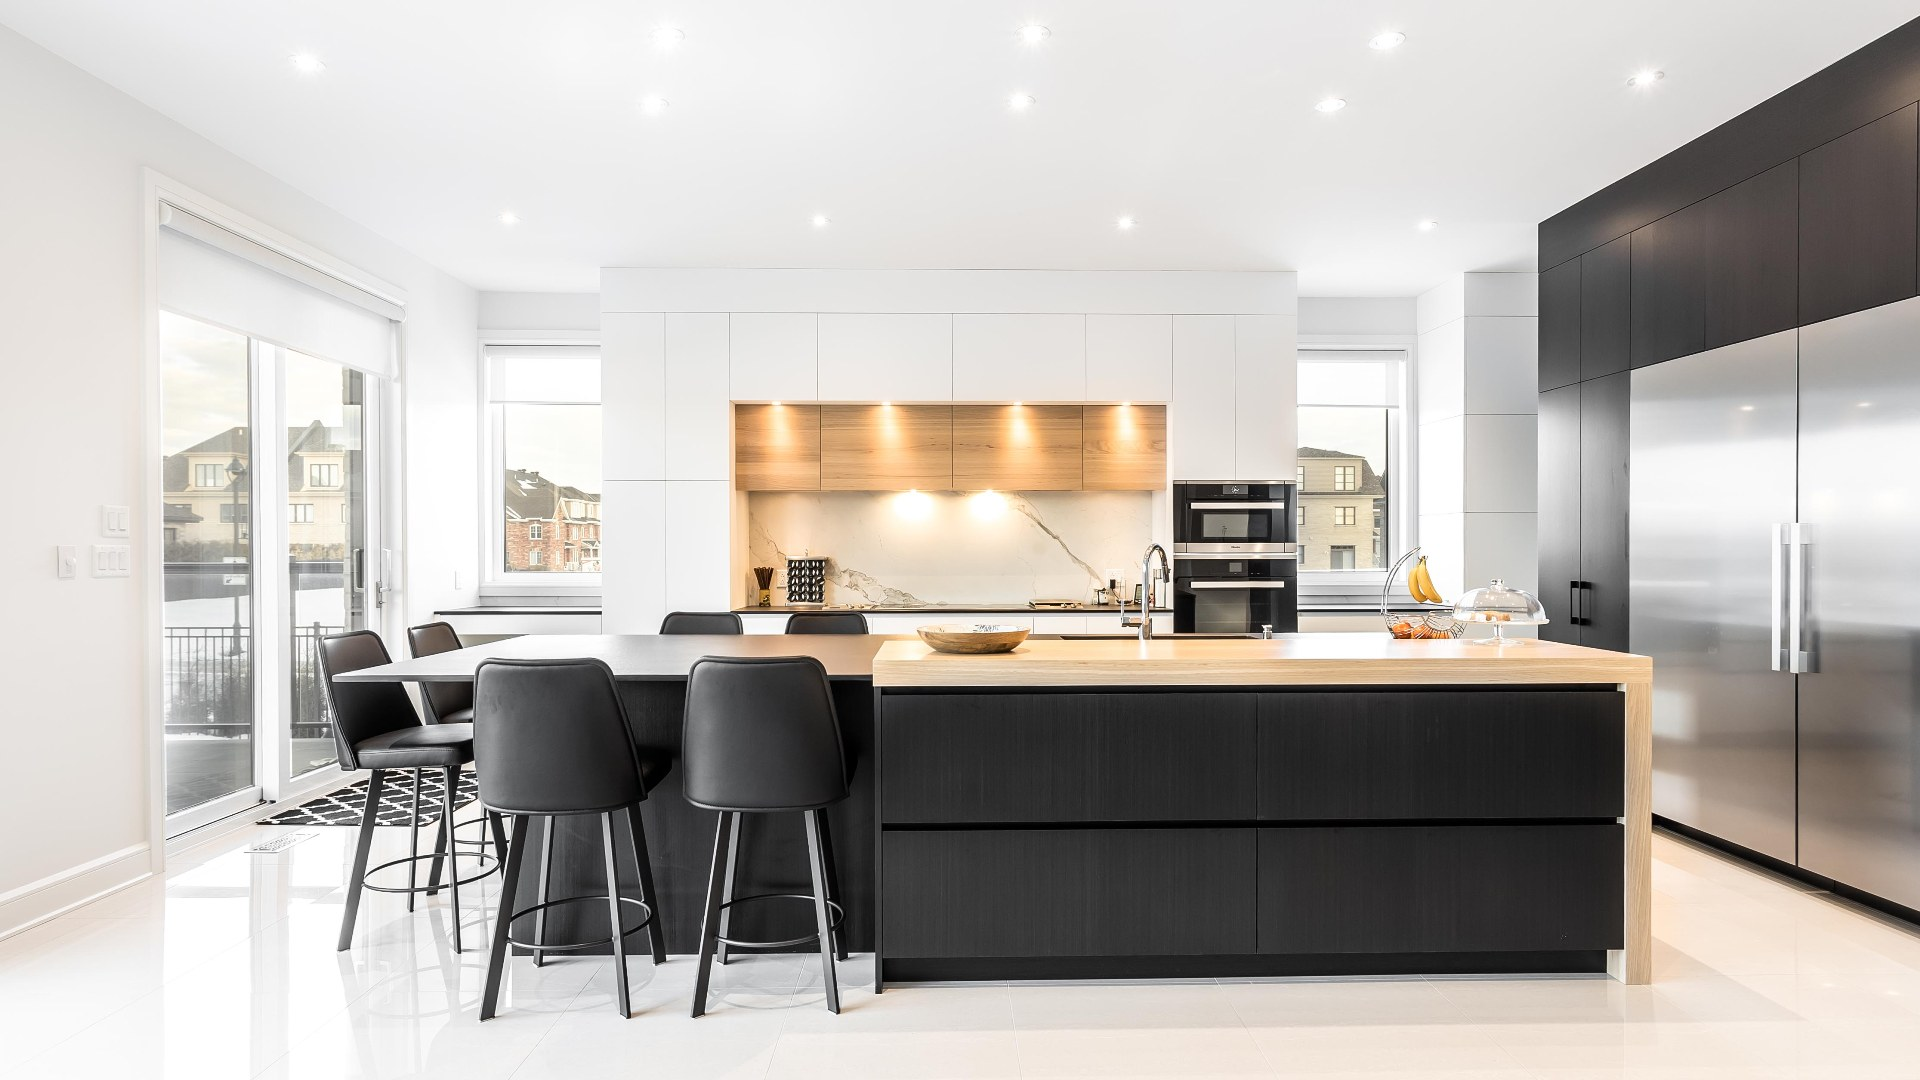 Modern black and white kitchen with Thermoform cabinets accented with oak wood. Luminaires are integrated into kitchen furniture to directly illuminate worktops and counters.